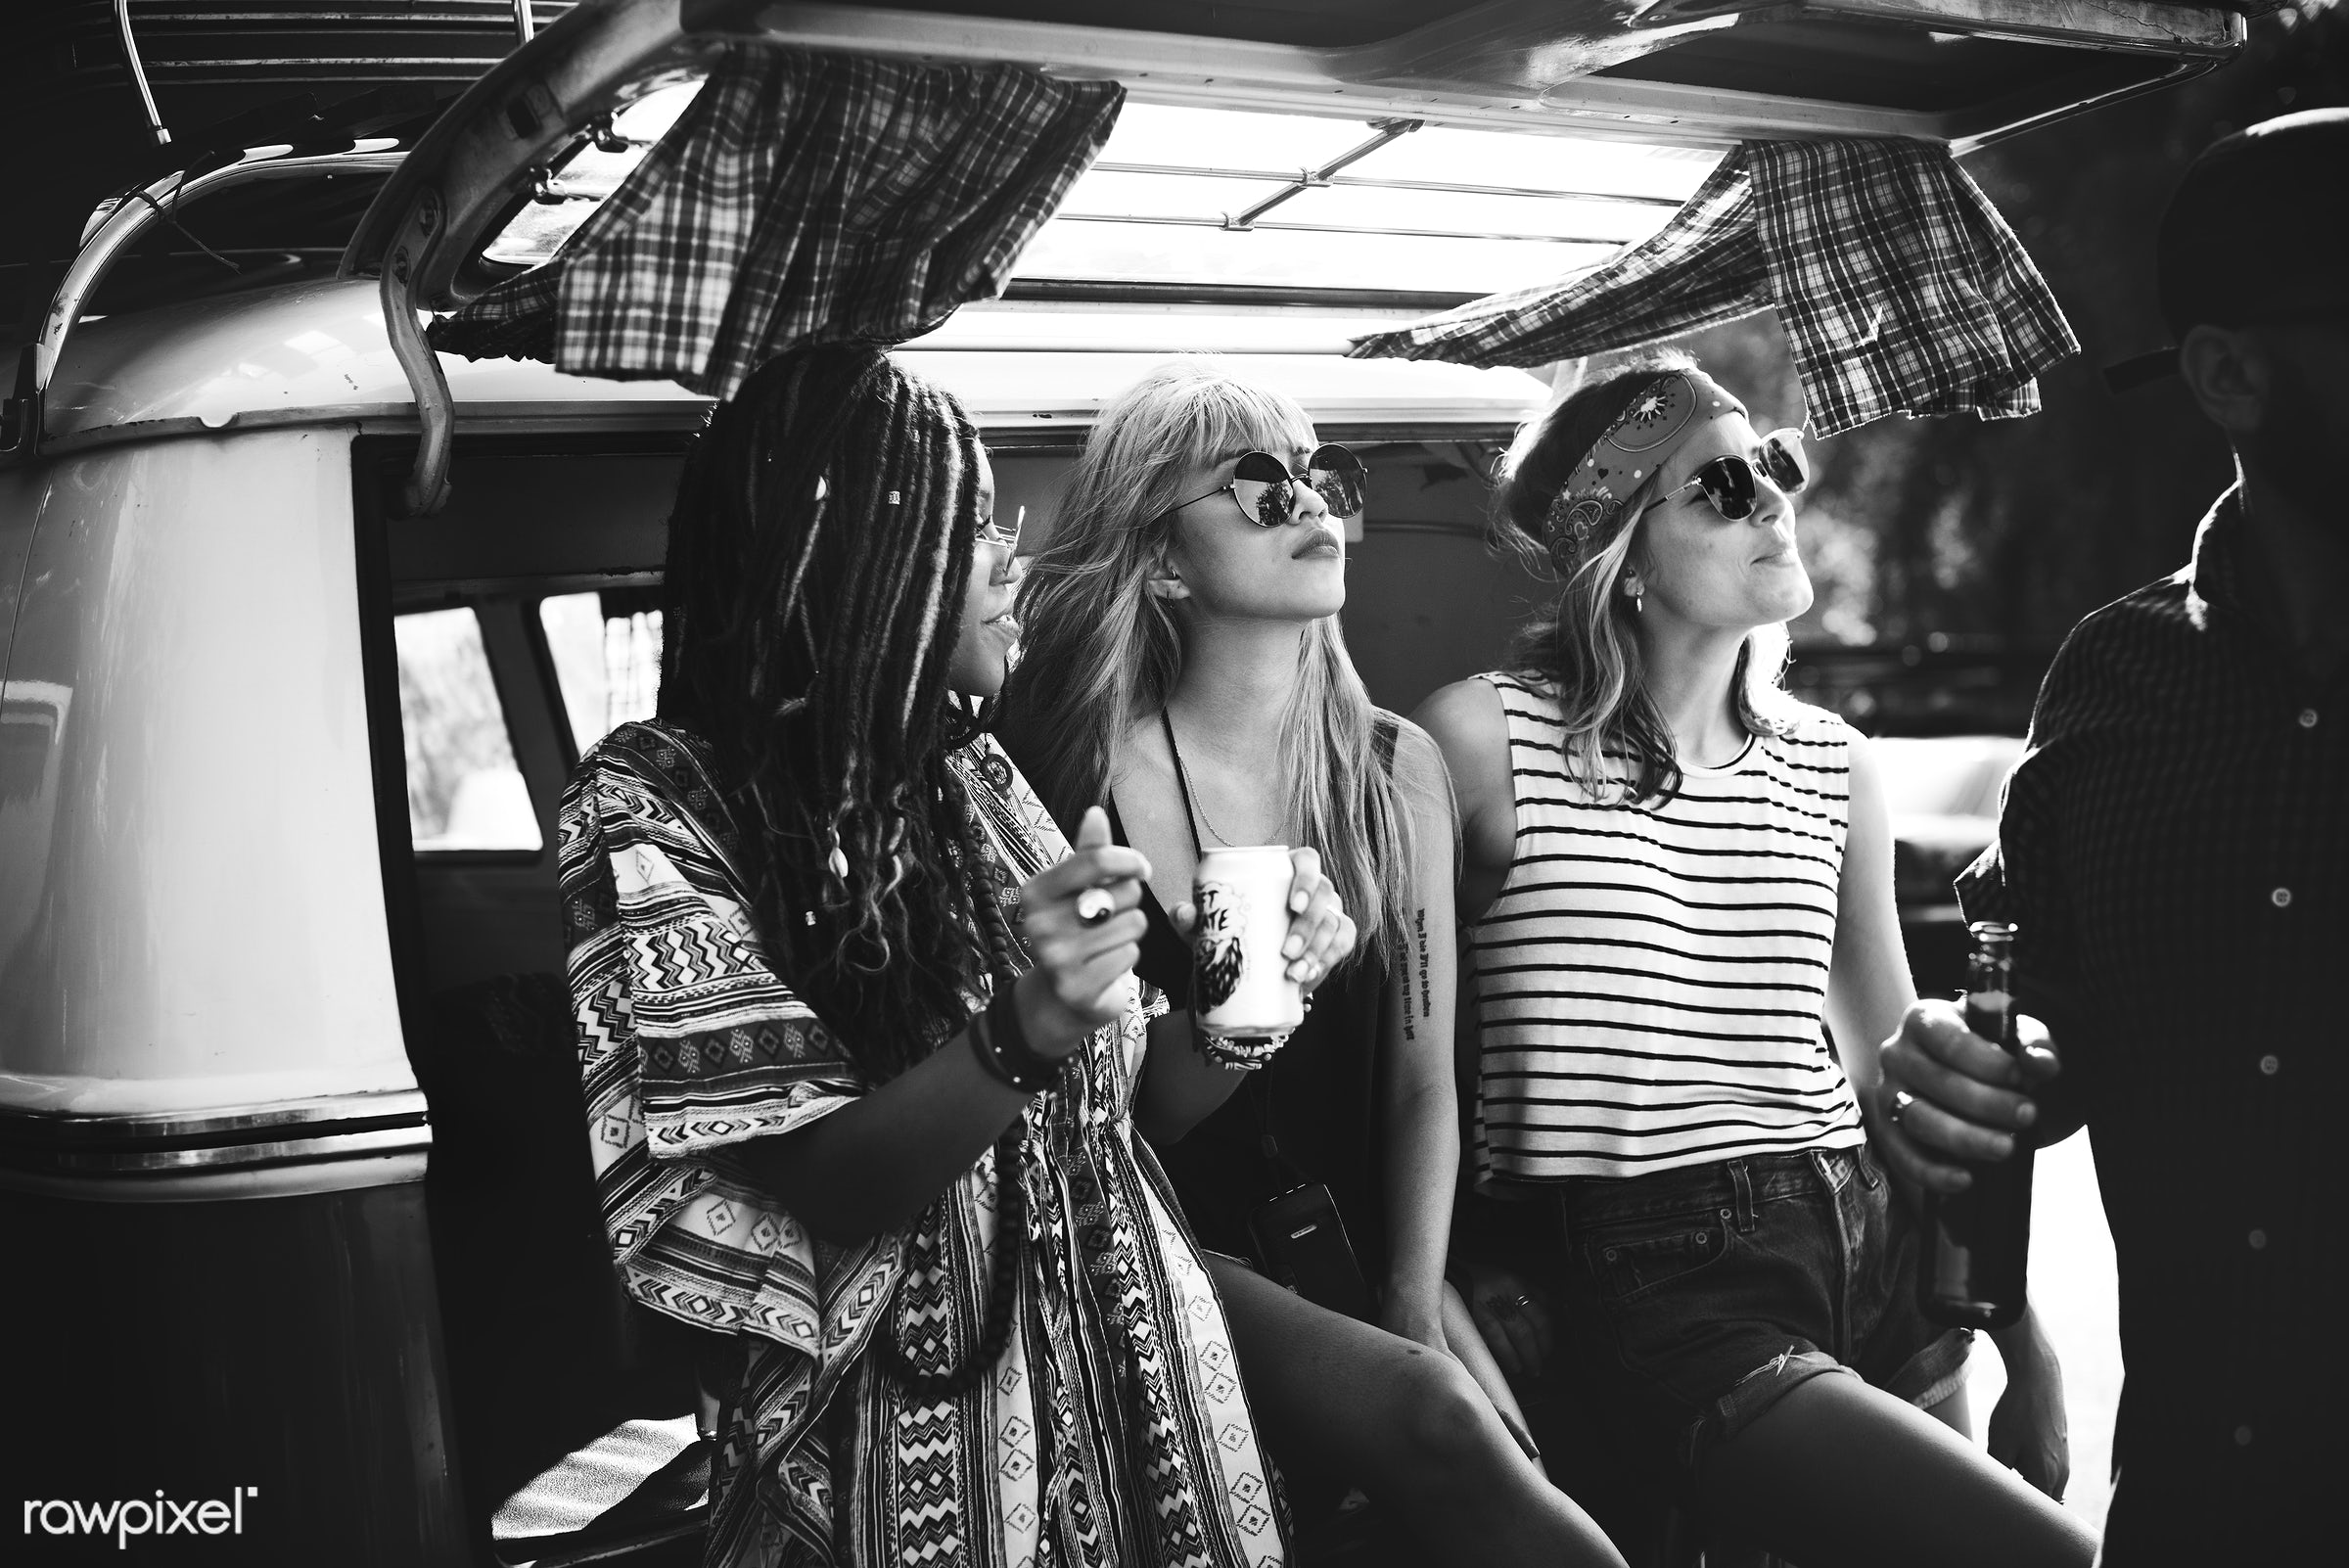 Diverse group of people enjoying a road trip and festival - person, comrade, drinking, travel, people, together, wanderlust...